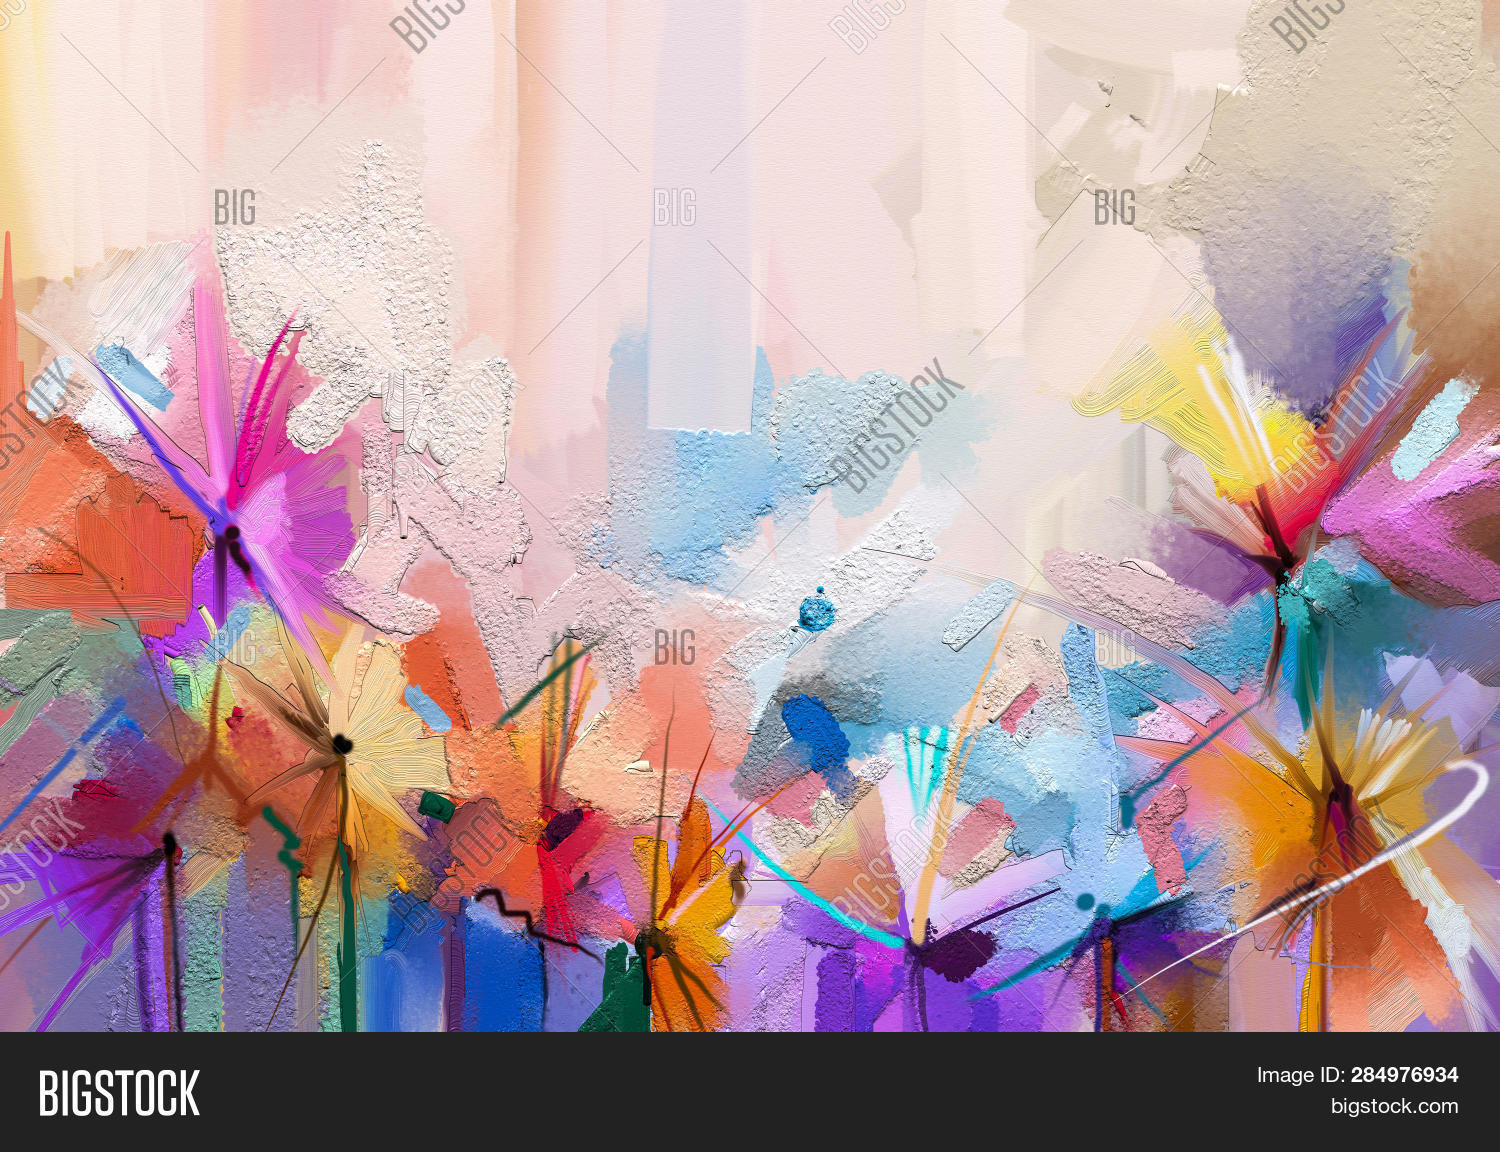 abstract,acrylic,art,artistic,artwork,background,bloom,blossom,blue,blur,brush,canvas,color,colorful,decoration,decorative,design,drawing,flora,floral,flower,gerbera,green,greeting,handmade,illustration,life,modern,nature,oil,paint,paintbrush,painting,pastel,petal,pink,plant,red,spring,still,stroke,style,summer,texture,vibrant,wallpaper,white,yellow